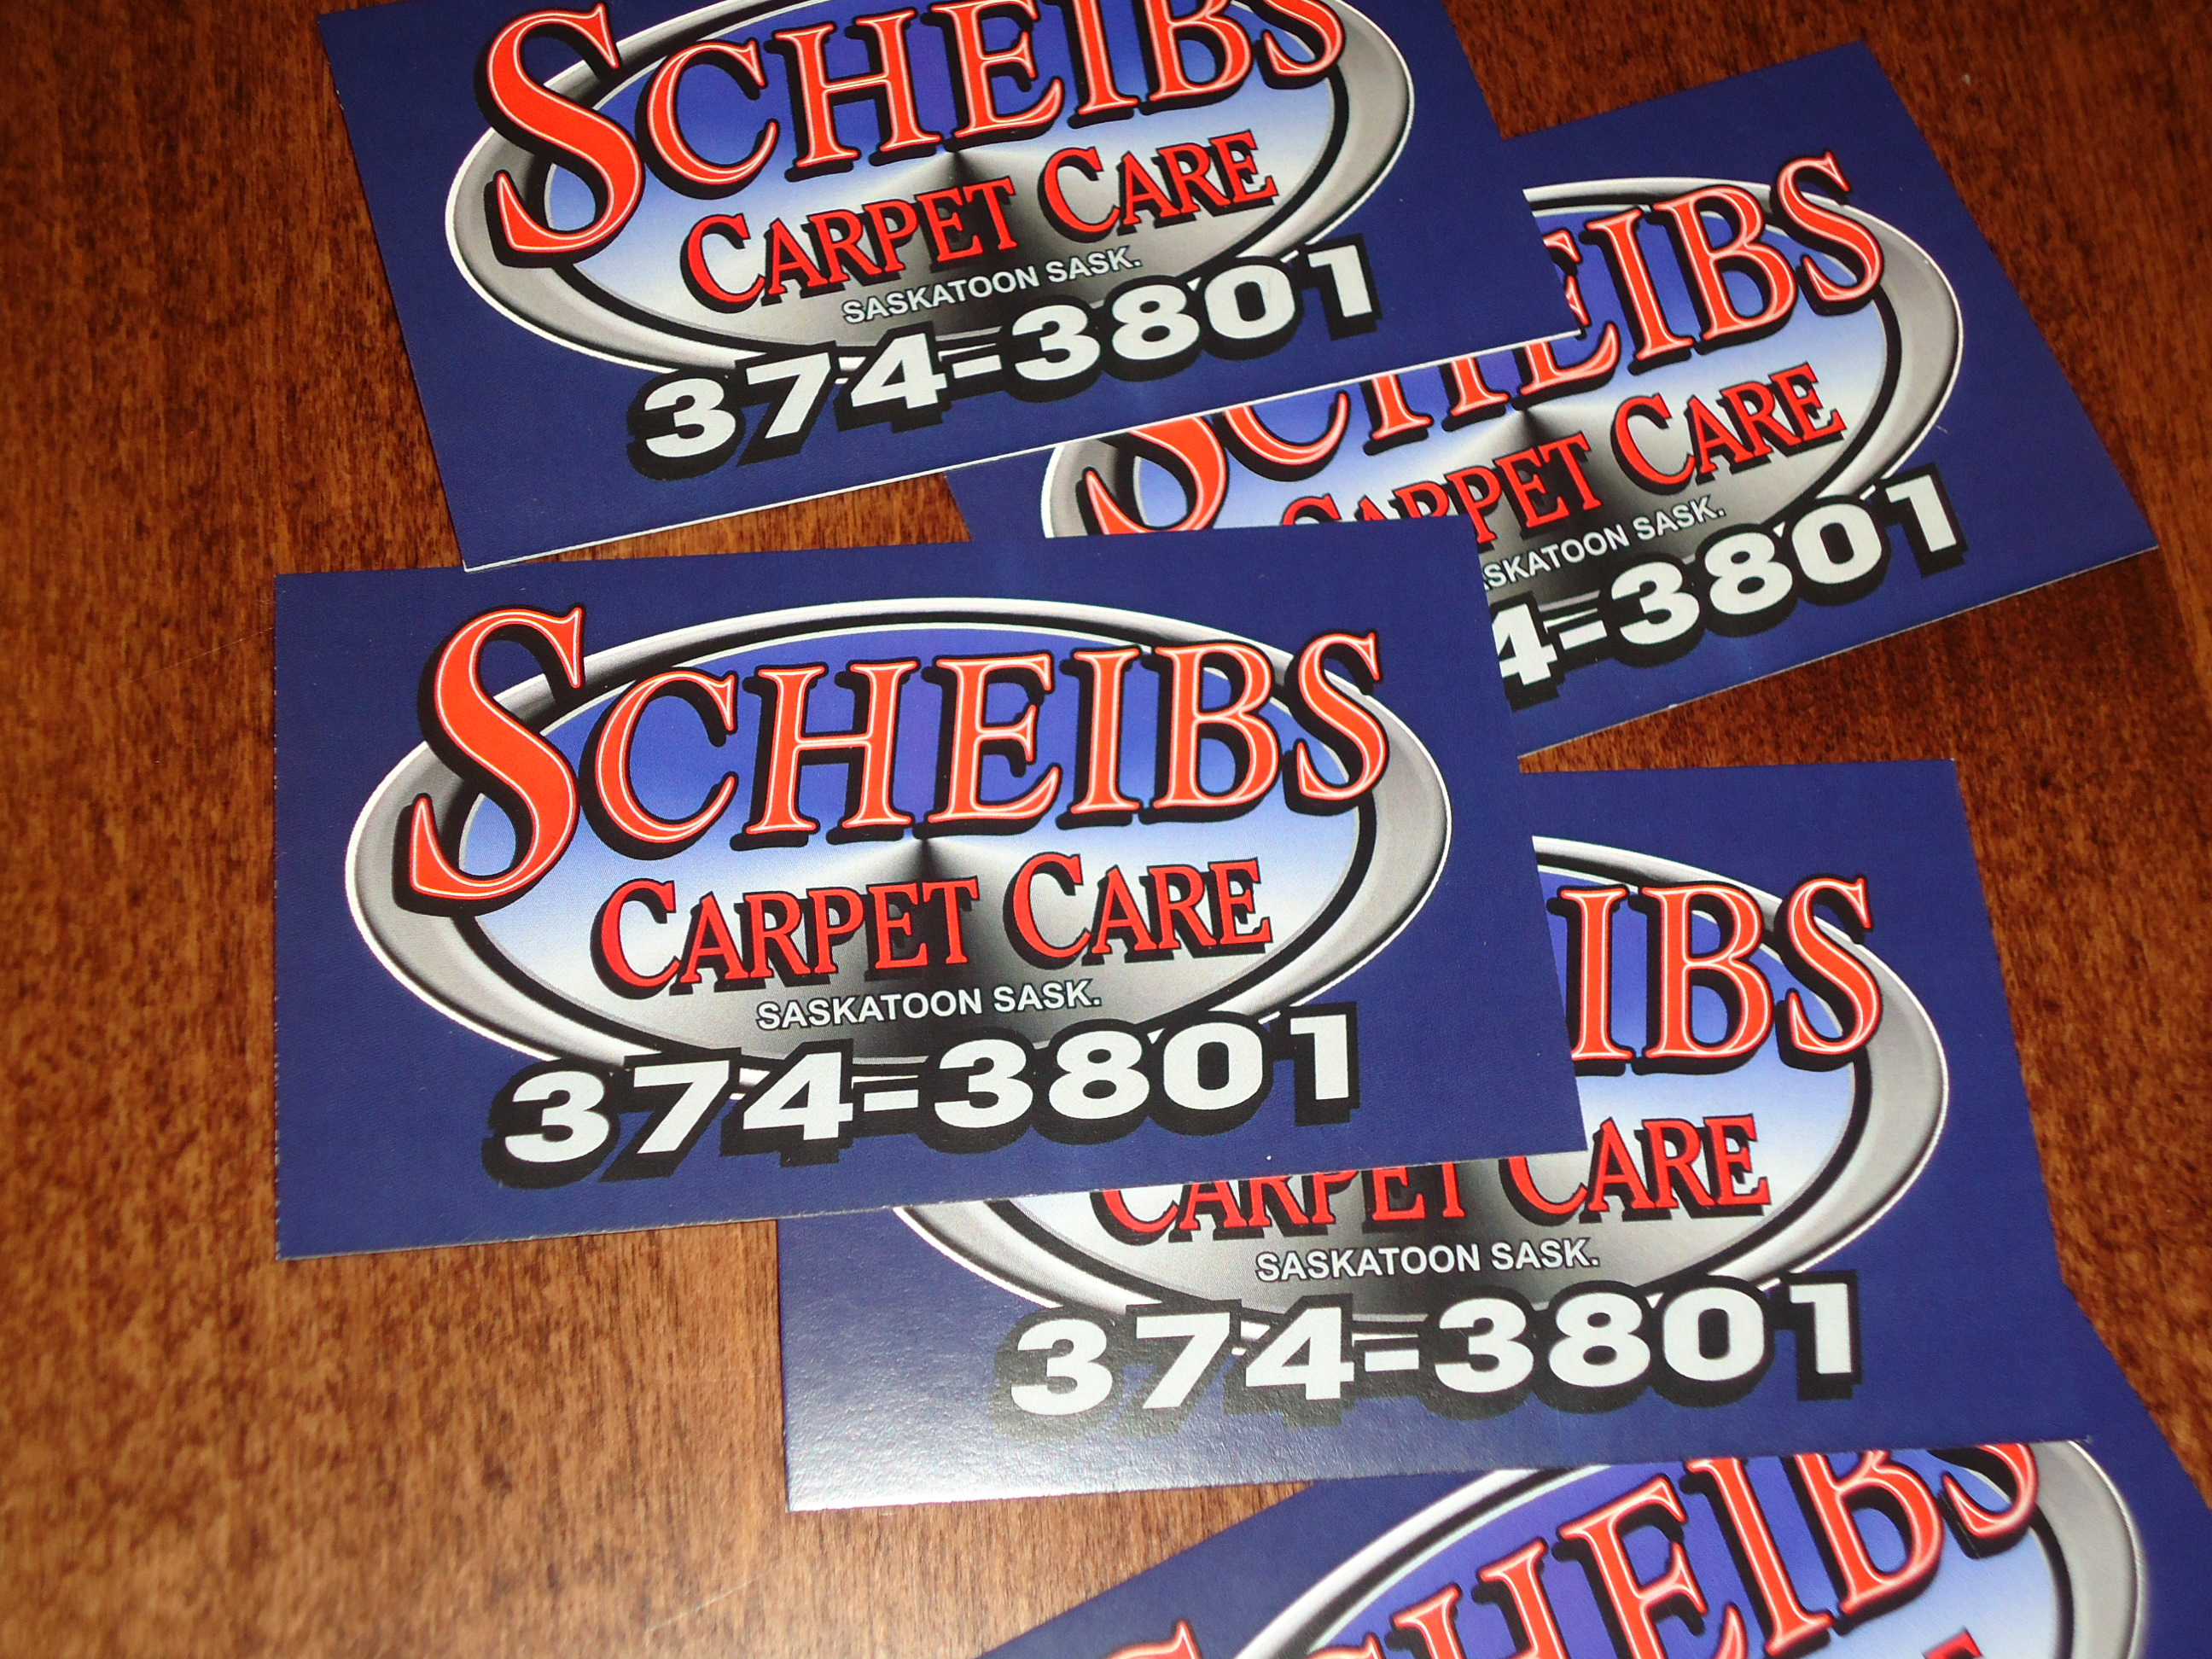 New business cards | Scheibs Carpet Care & Furnace Cleaning